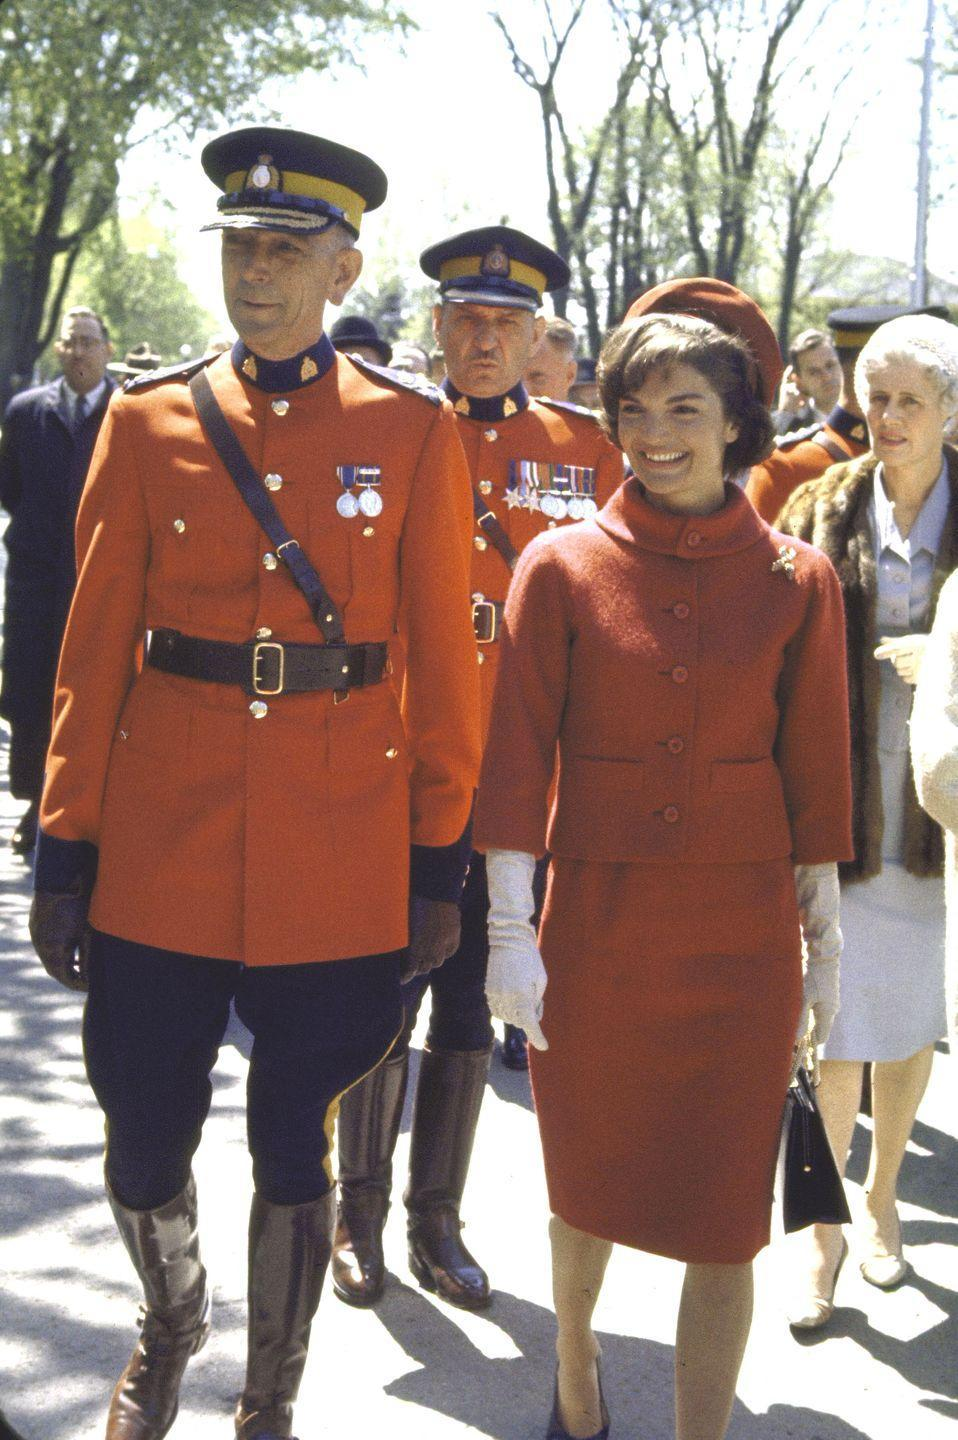 "<p>During her time as First Lady, Jackie and her <a href=""https://www.townandcountrymag.com/style/fashion-trends/g9947418/10-brands-jackie-kennedy-loved/?slide=1"" rel=""nofollow noopener"" target=""_blank"" data-ylk=""slk:signature skirt suits"" class=""link rapid-noclick-resp"">signature skirt suits</a> by designer Oleg Cassini became iconic. </p><p><strong>More: </strong><a href=""https://www.townandcountrymag.com/style/fashion-trends/g9947418/10-brands-jackie-kennedy-loved/"" rel=""nofollow noopener"" target=""_blank"" data-ylk=""slk:10 Brands Jackie Kennedy Loved"" class=""link rapid-noclick-resp"">10 Brands Jackie Kennedy Loved </a></p>"